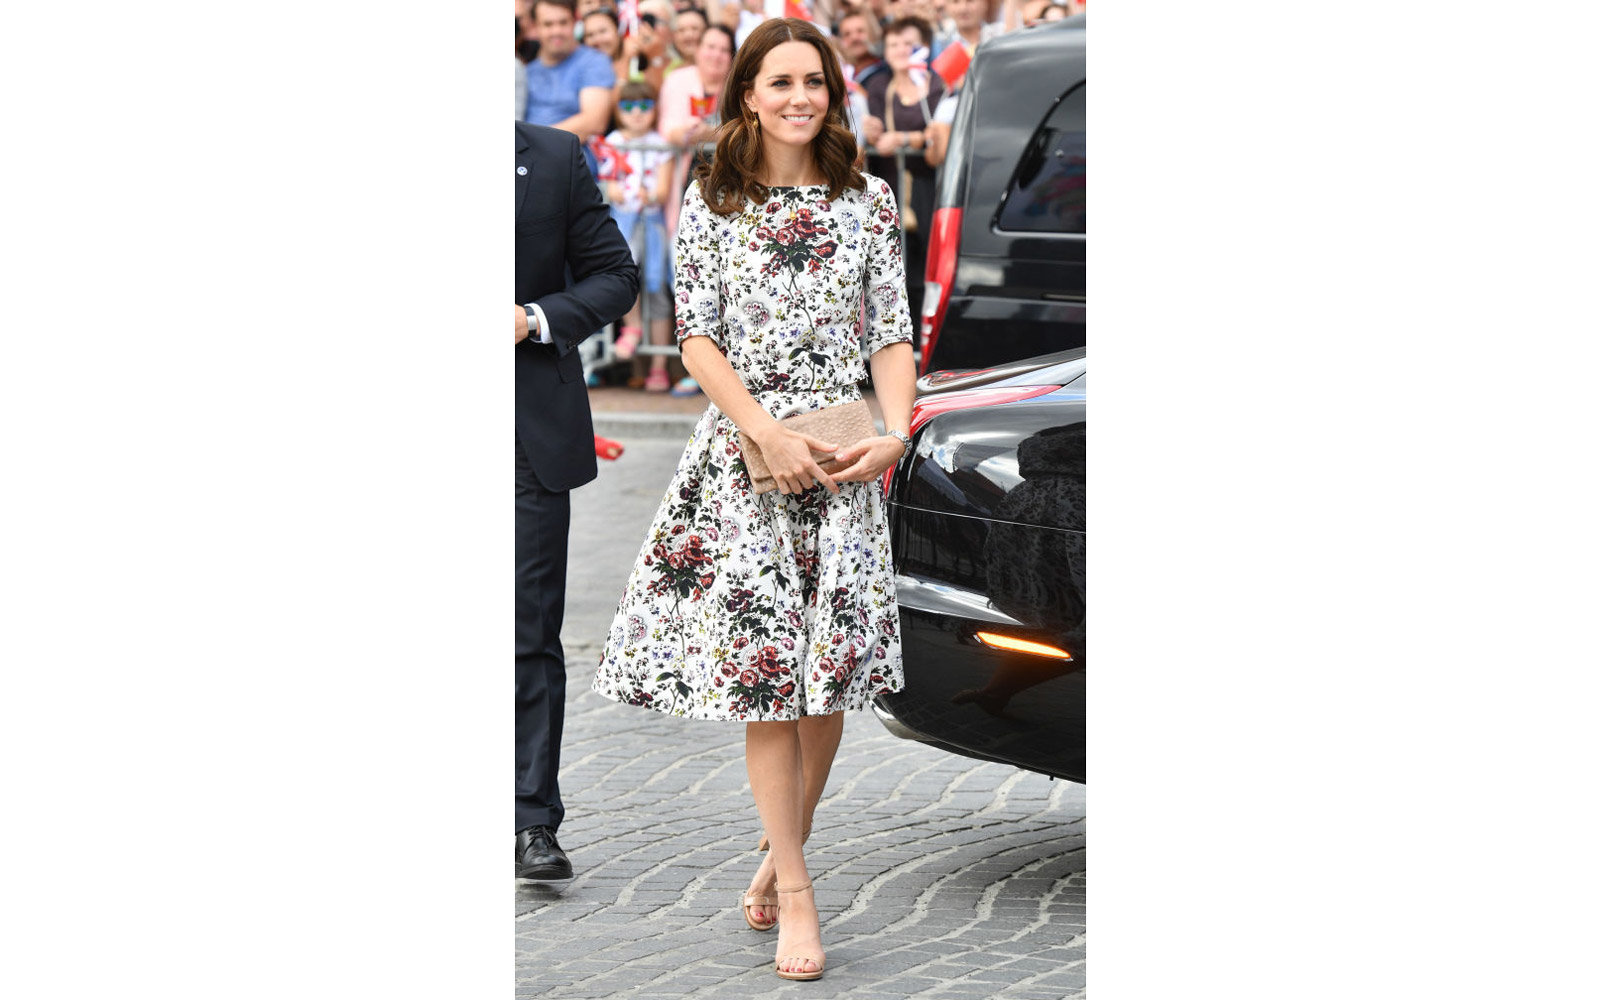 GDANSK, POLAND - JULY 18:  (NO UK SALES FOR 28 DAYS FROM CREATE DATE) Catherine, Duchess of Cambridge visits the Shakespeare theatre during an official visit to Poland and Germany on July 18, 2017 in Gdansk, Poland.  (Photo by Pool/Samir Hussein/WireImage